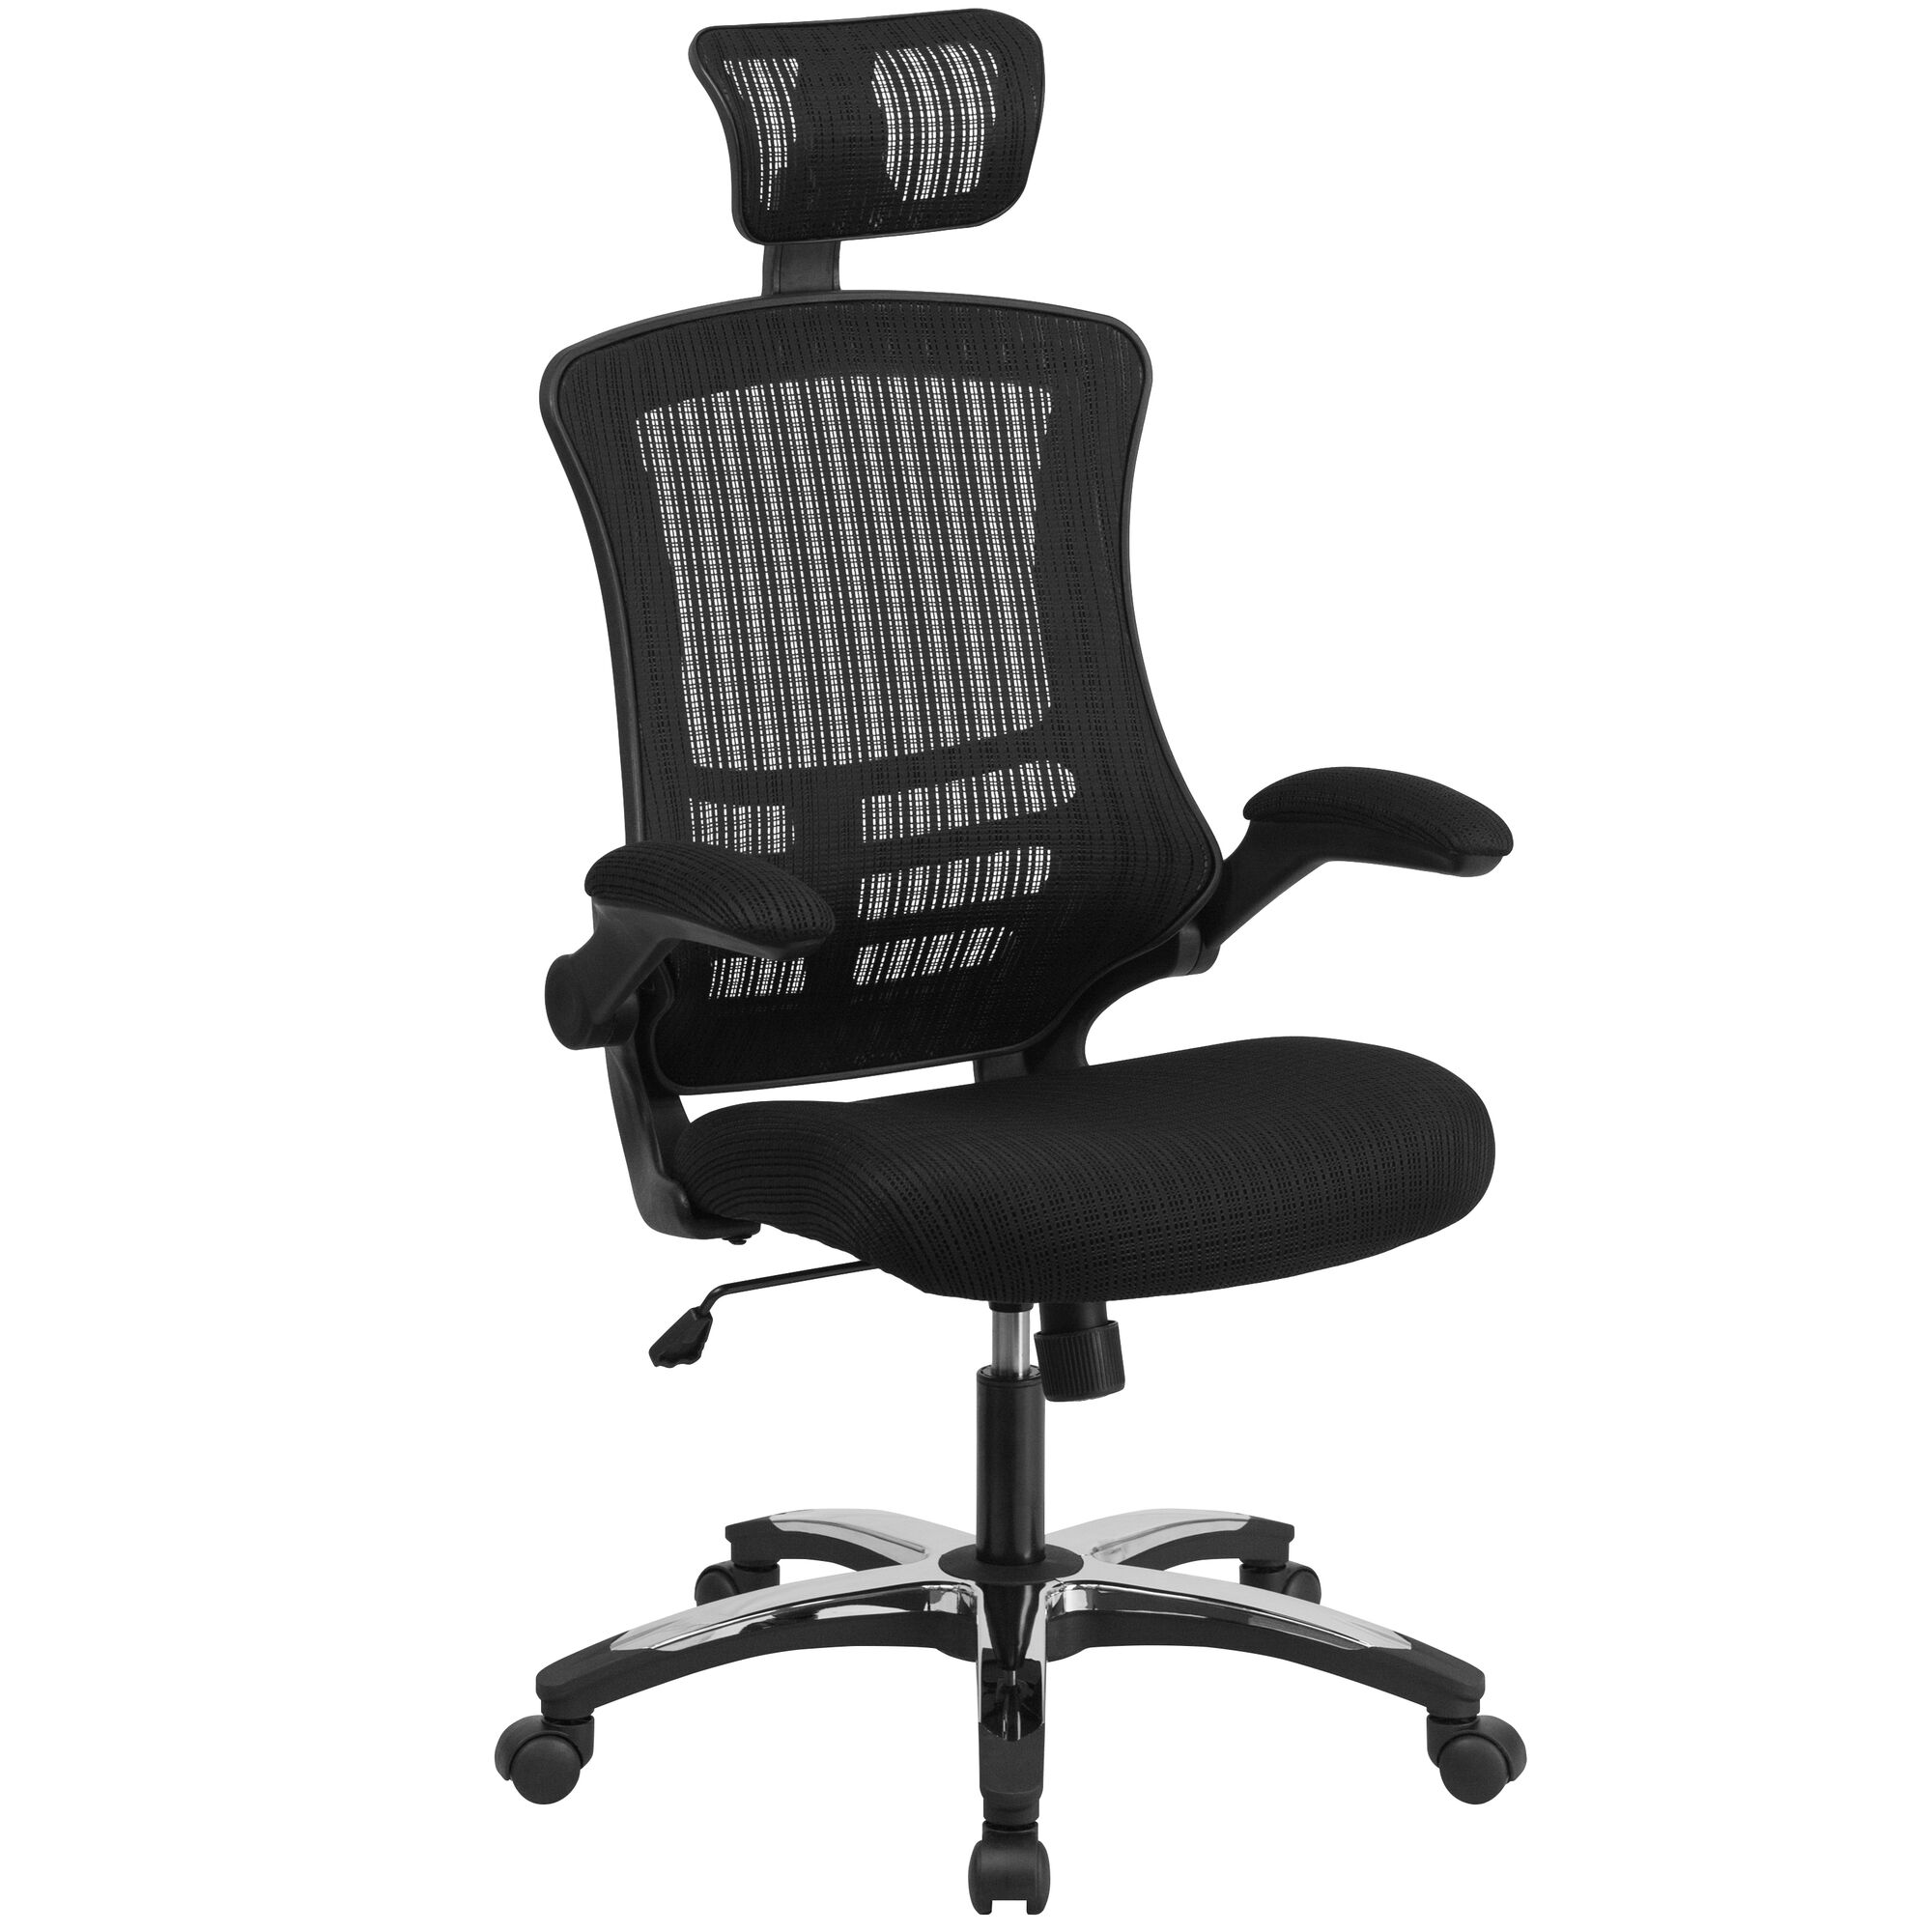 Excellent High Back Office Chair High Back Mesh Executive Office And Desk Chair With Wheels And Adjustable Headrest Pdpeps Interior Chair Design Pdpepsorg